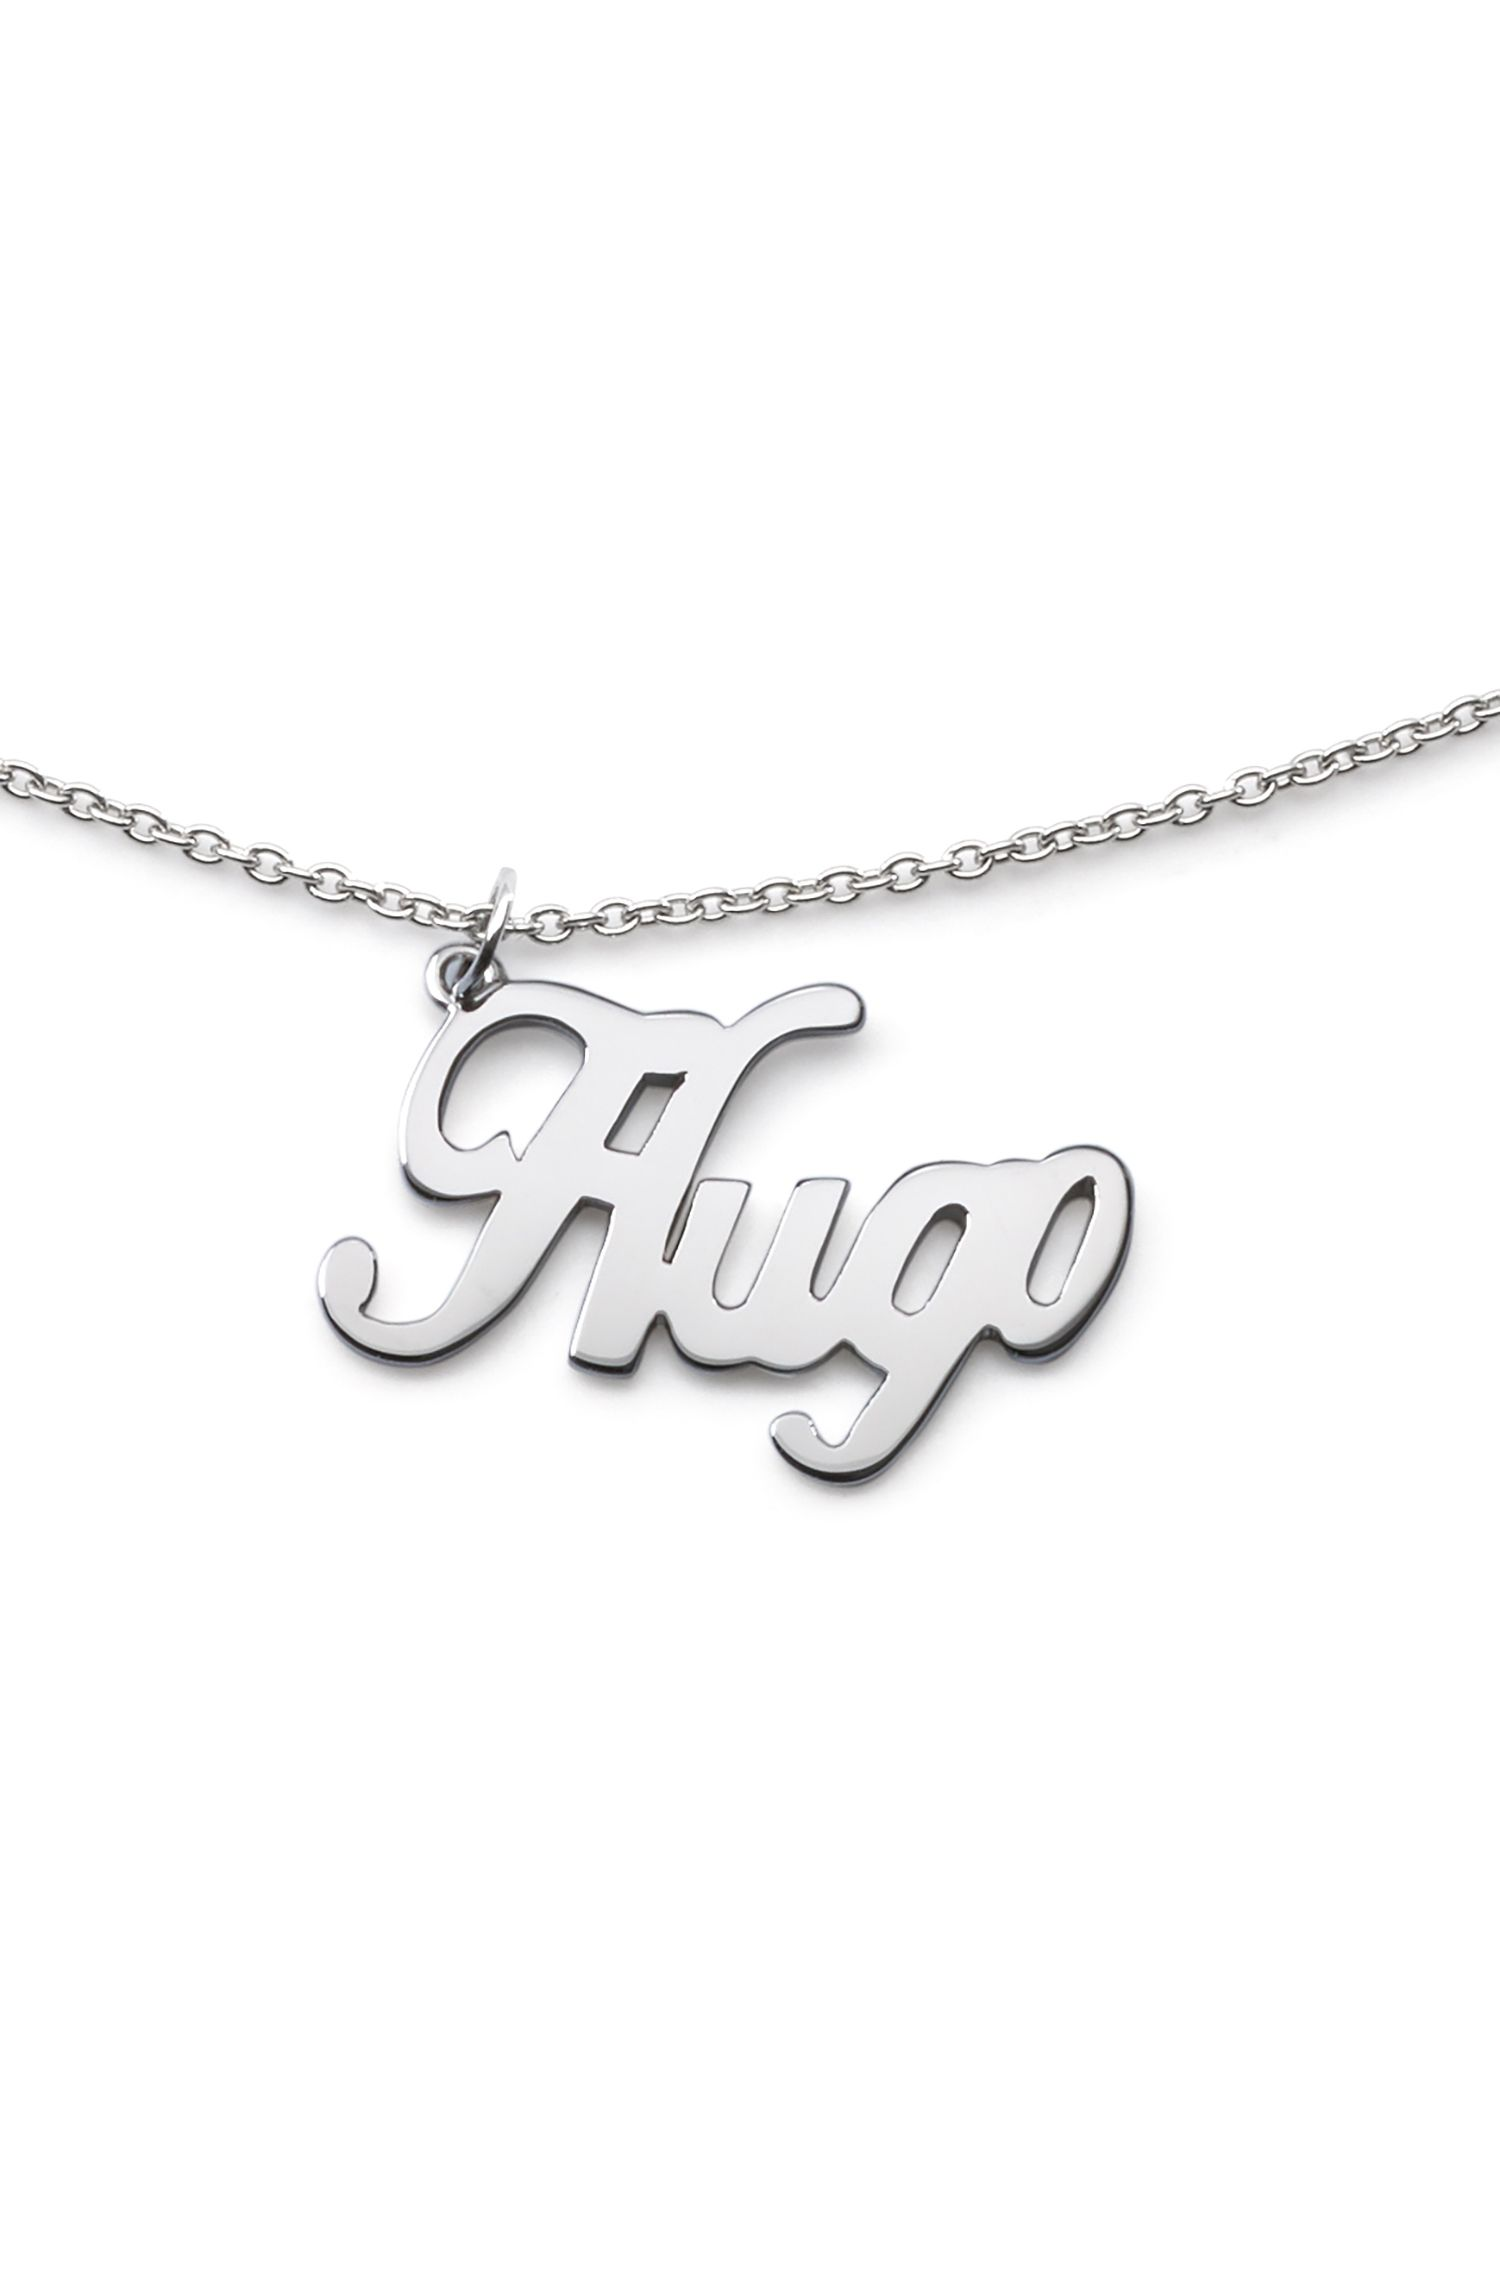 Polished chain necklace with logo pendant, Silver